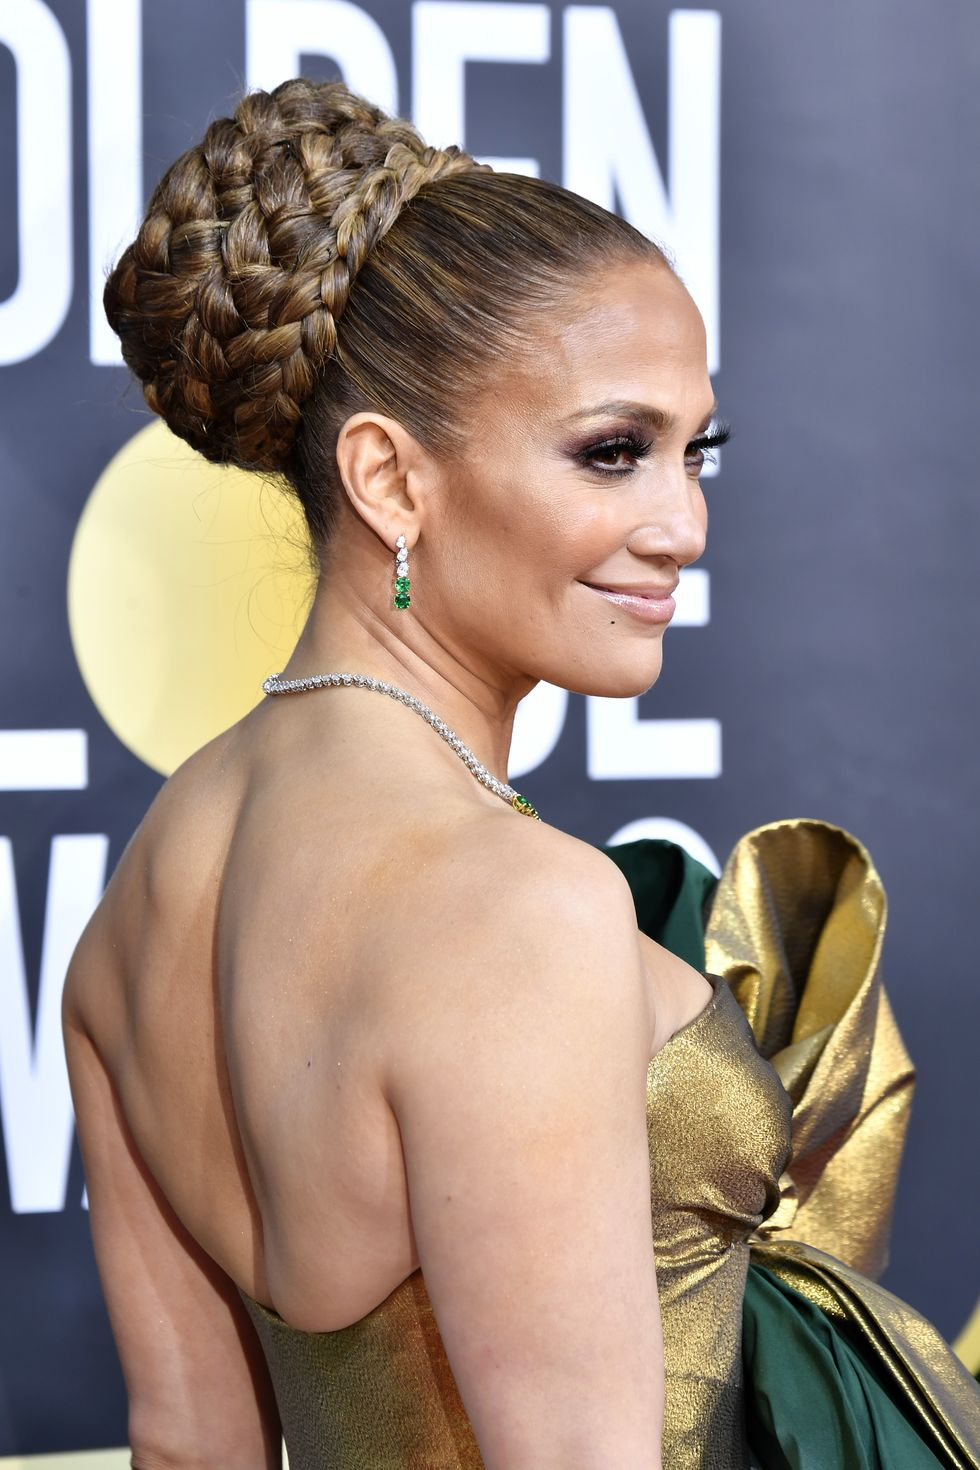 2020-beauty-trends-smokey-eye-look-on-braided-bun-j-lo-lopez